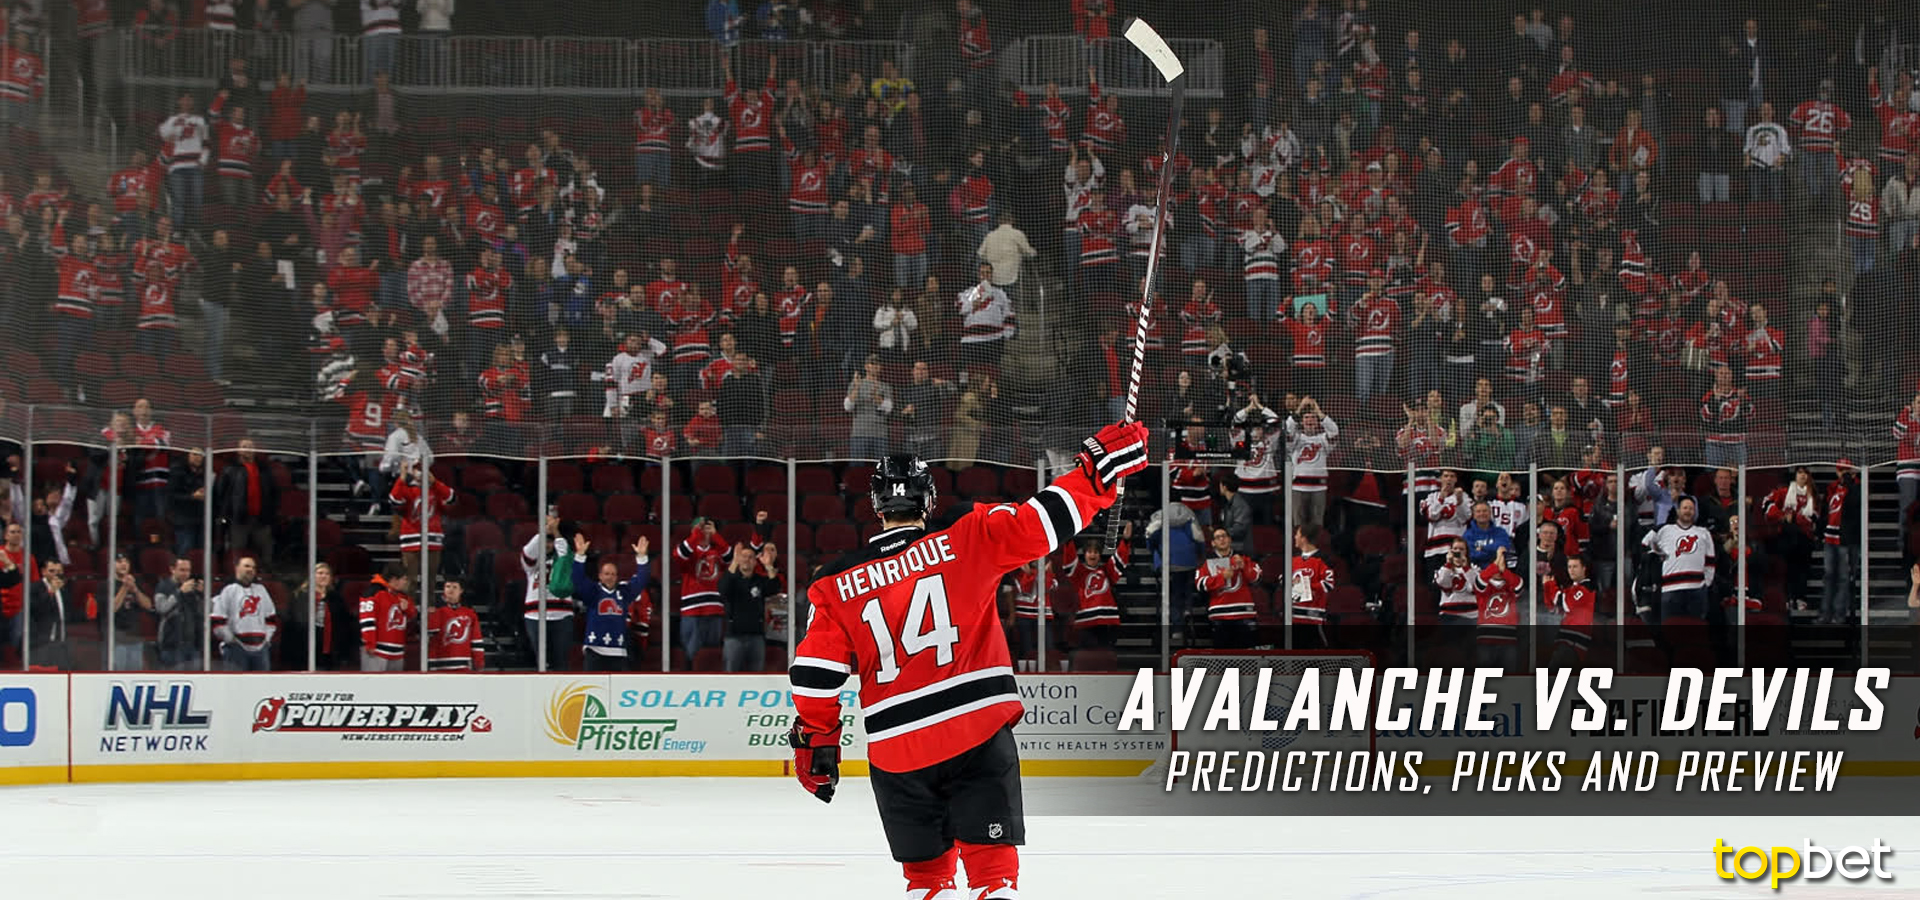 avalanche vs devils predictions and preview february 2017. Black Bedroom Furniture Sets. Home Design Ideas